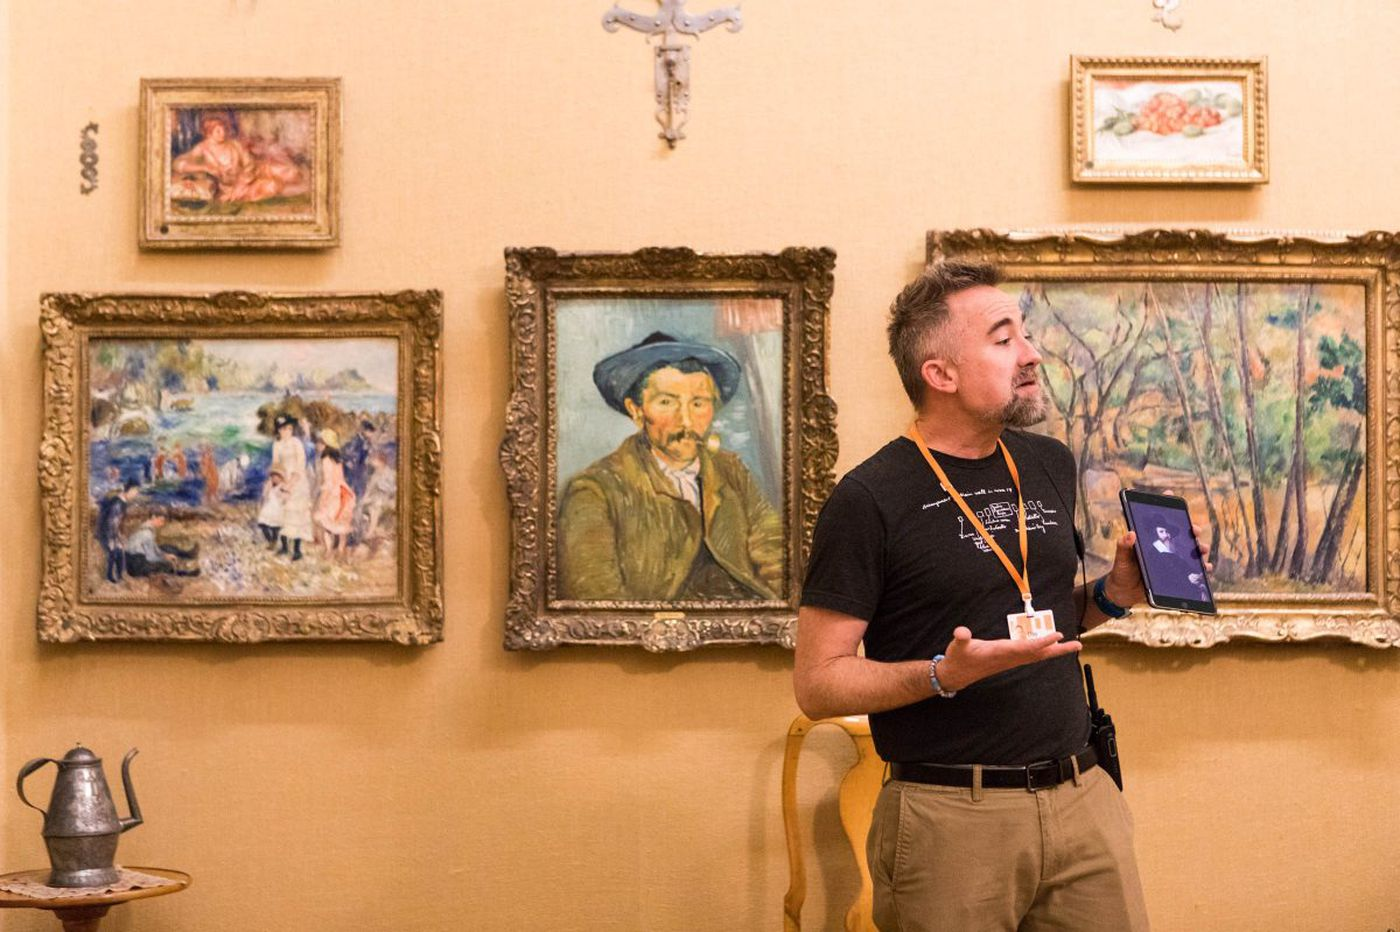 Art Team is Barnes Foundation's new twist on visitor 'engagement'